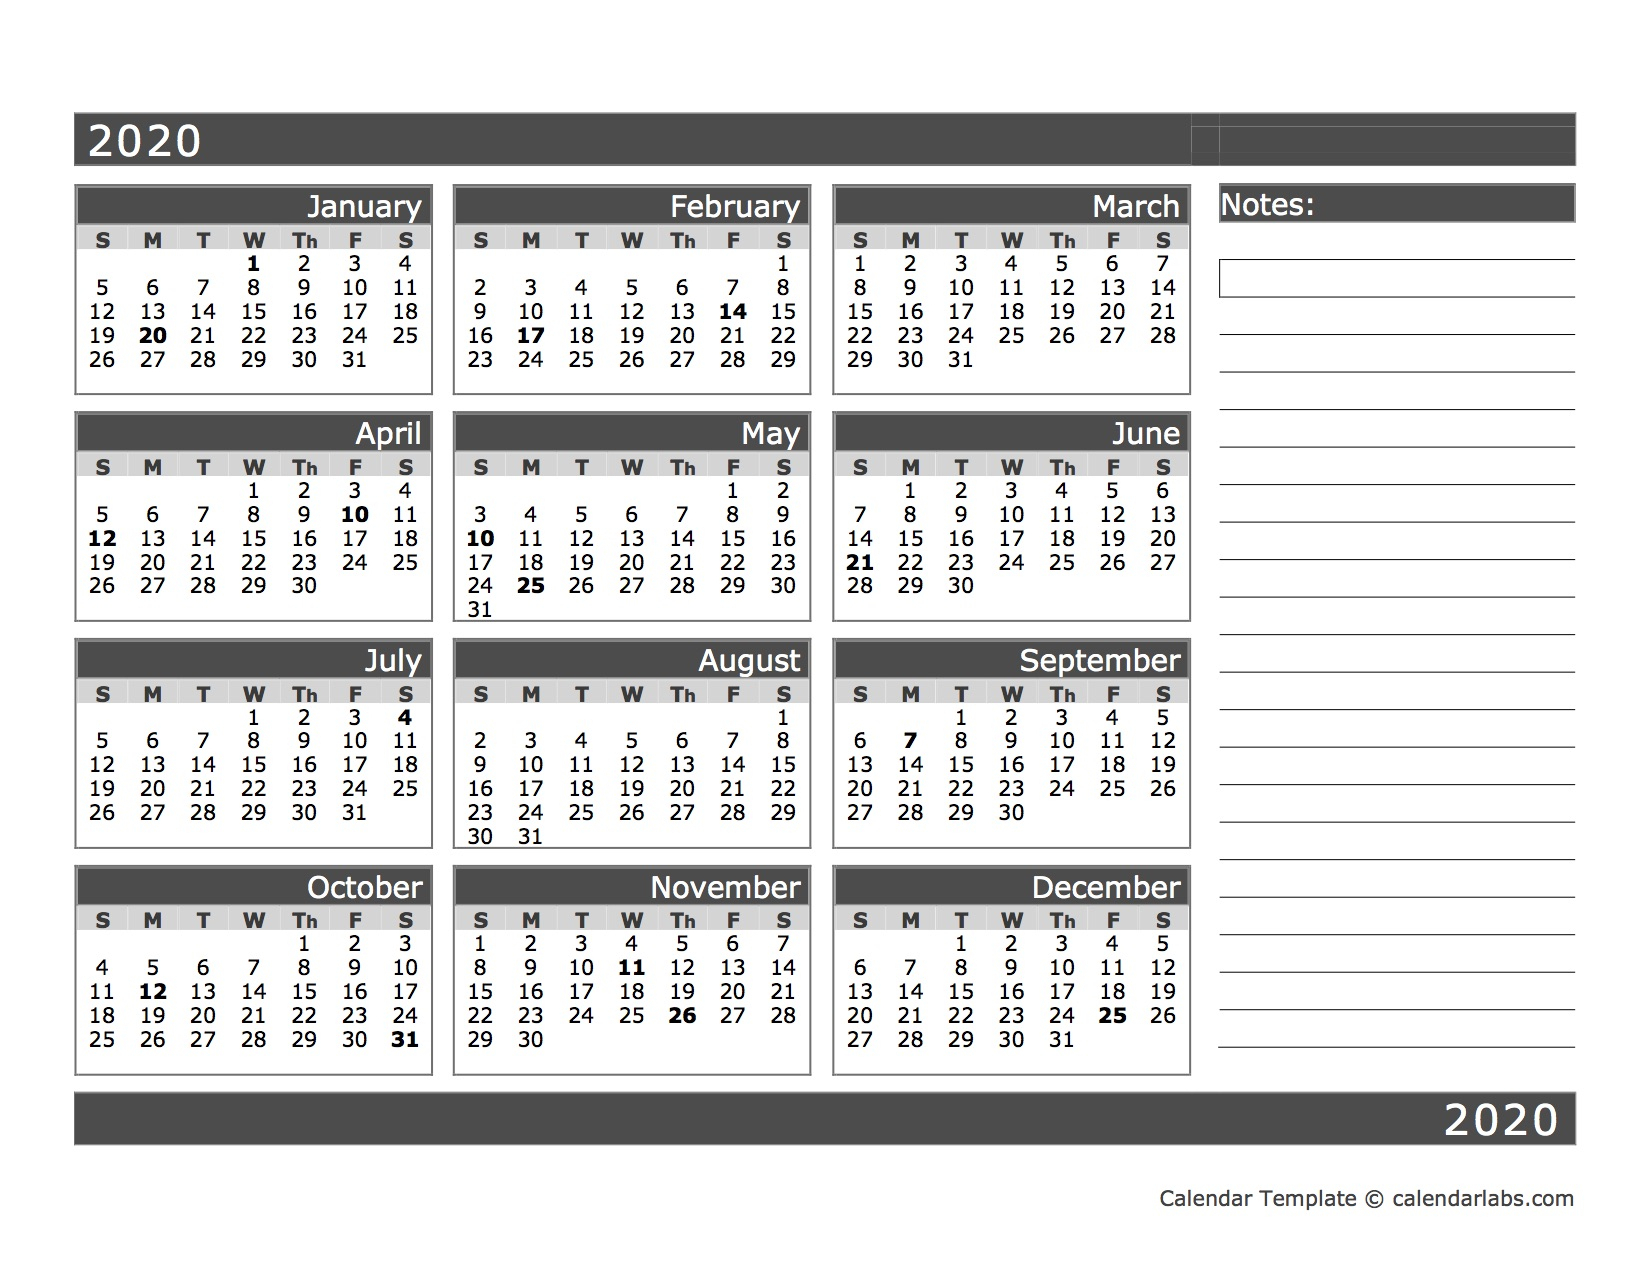 2020 Blank 12 Month Calendar In One Page  Free Printable within Calendar Template 12 Months One Page